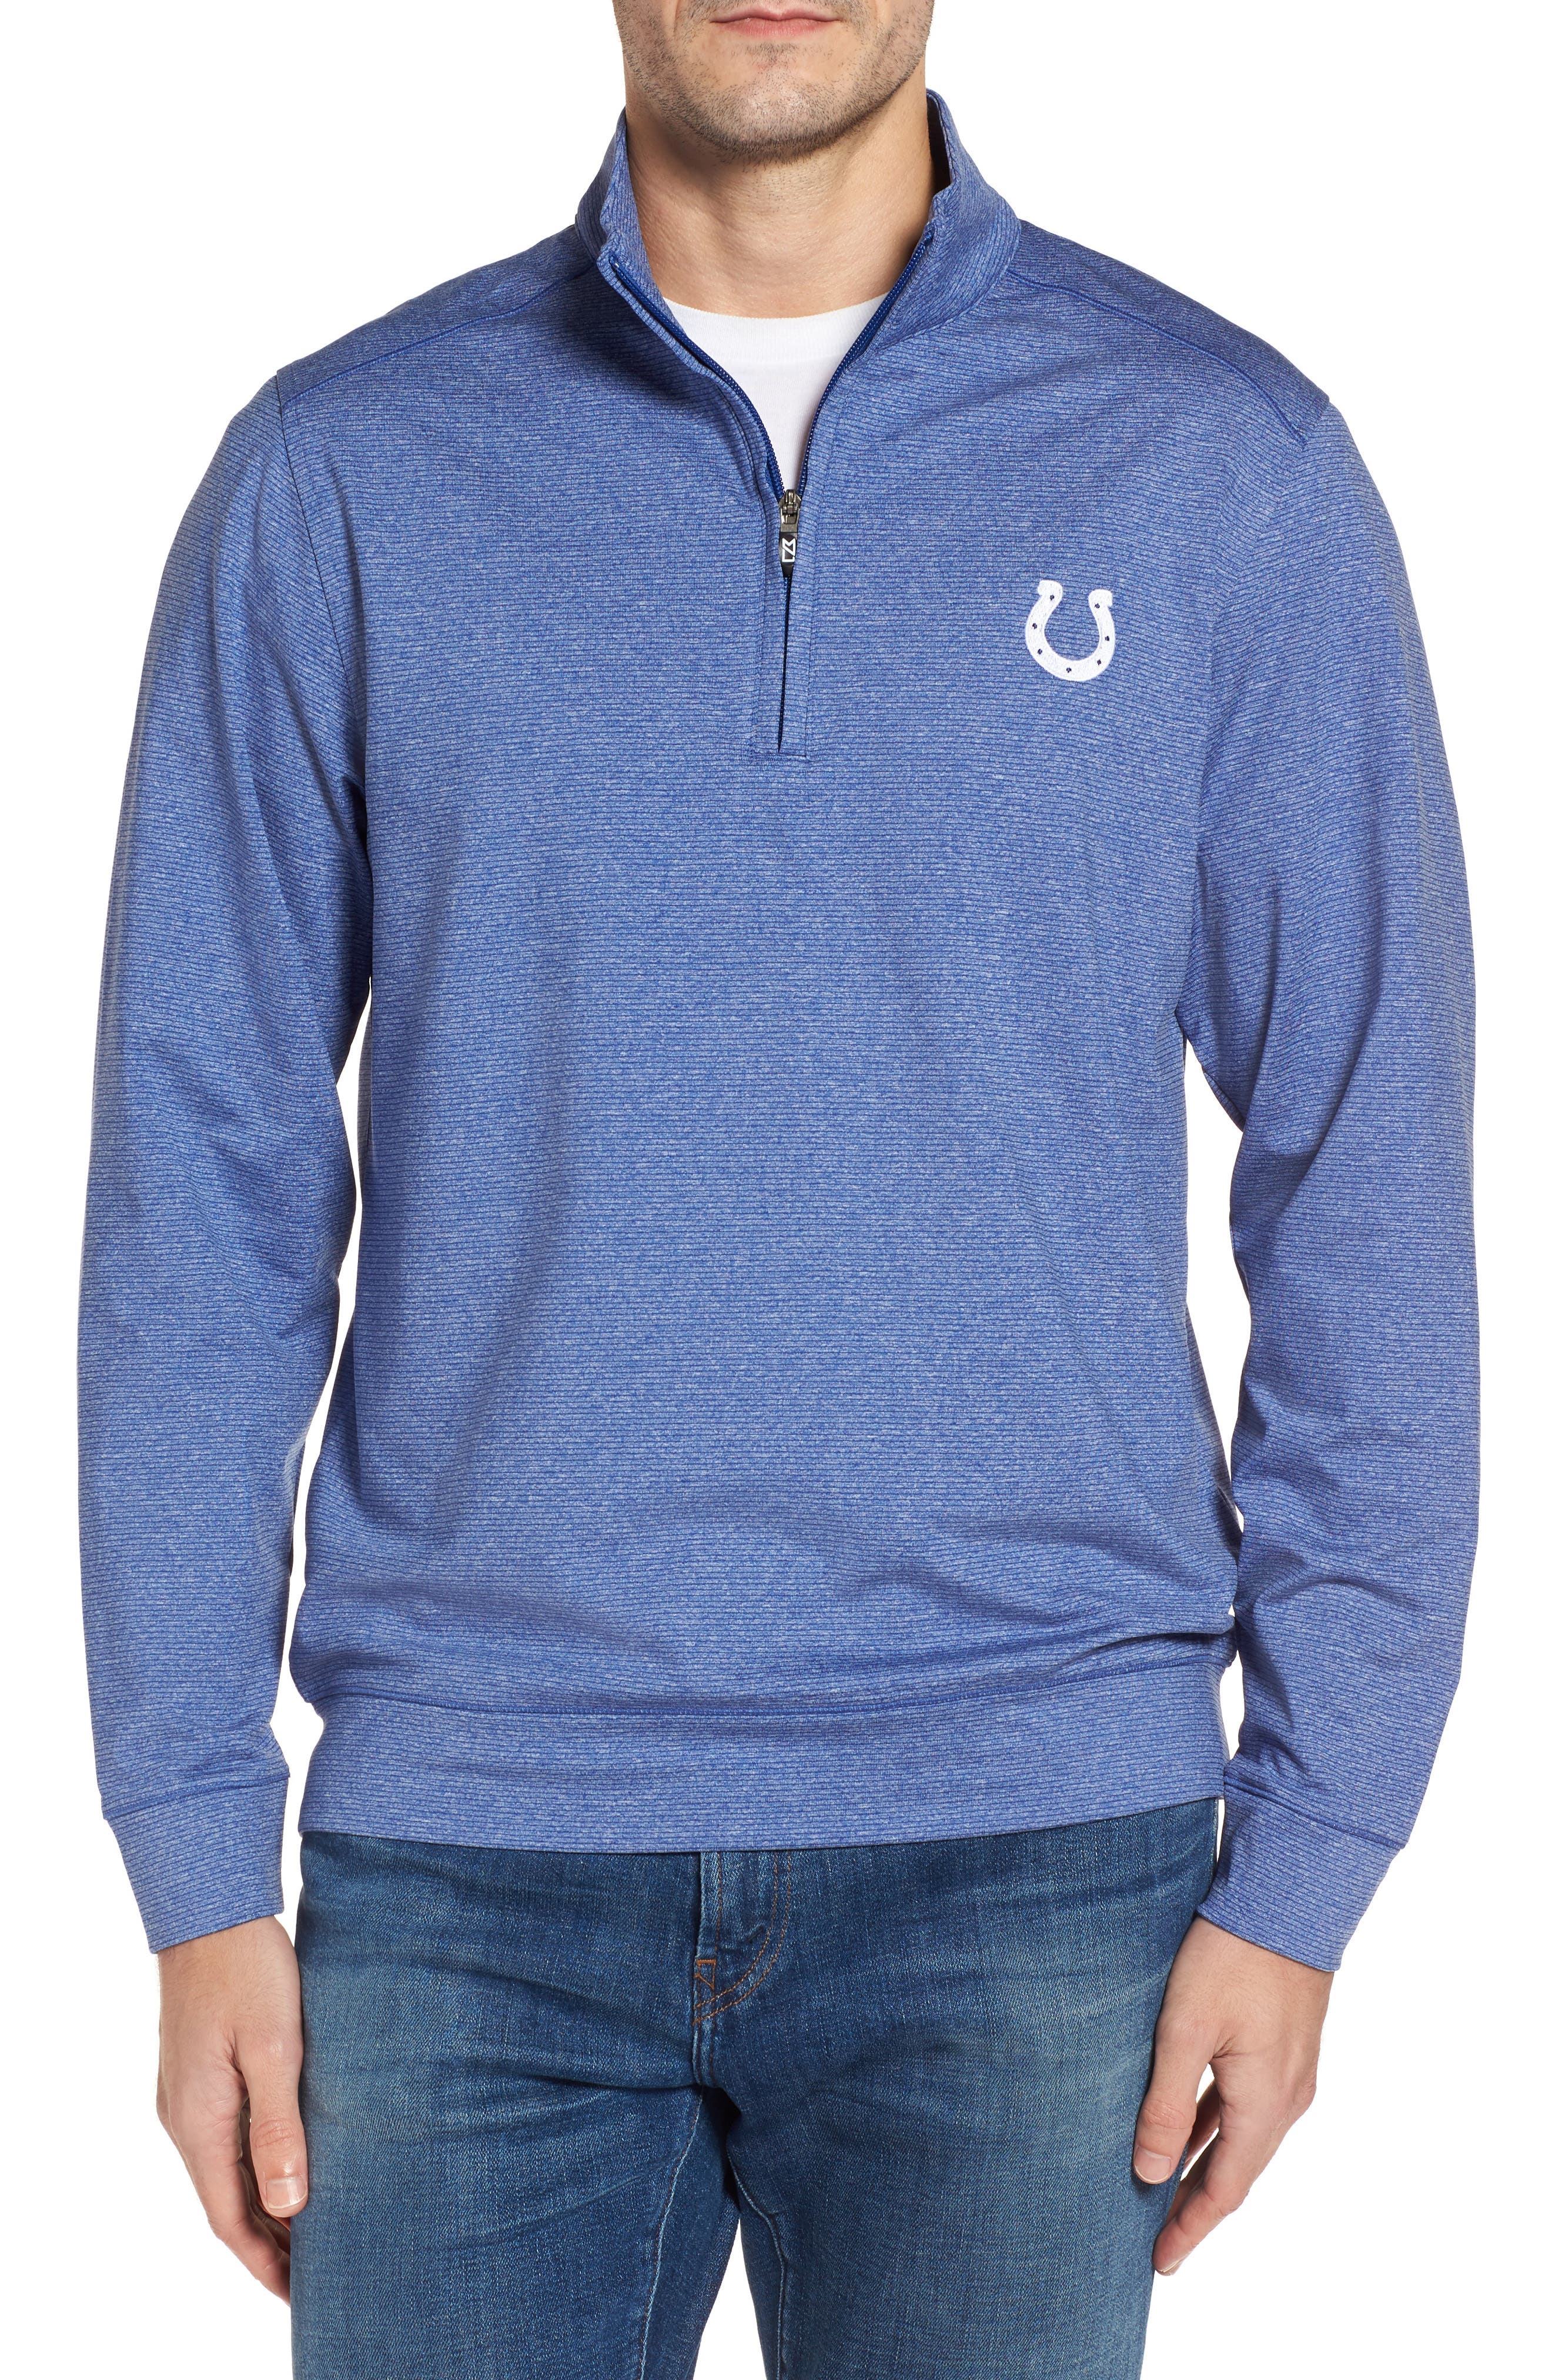 Alternate Image 1 Selected - Cutter & Buck Shoreline - Indianapolis Colts Half Zip Pullover